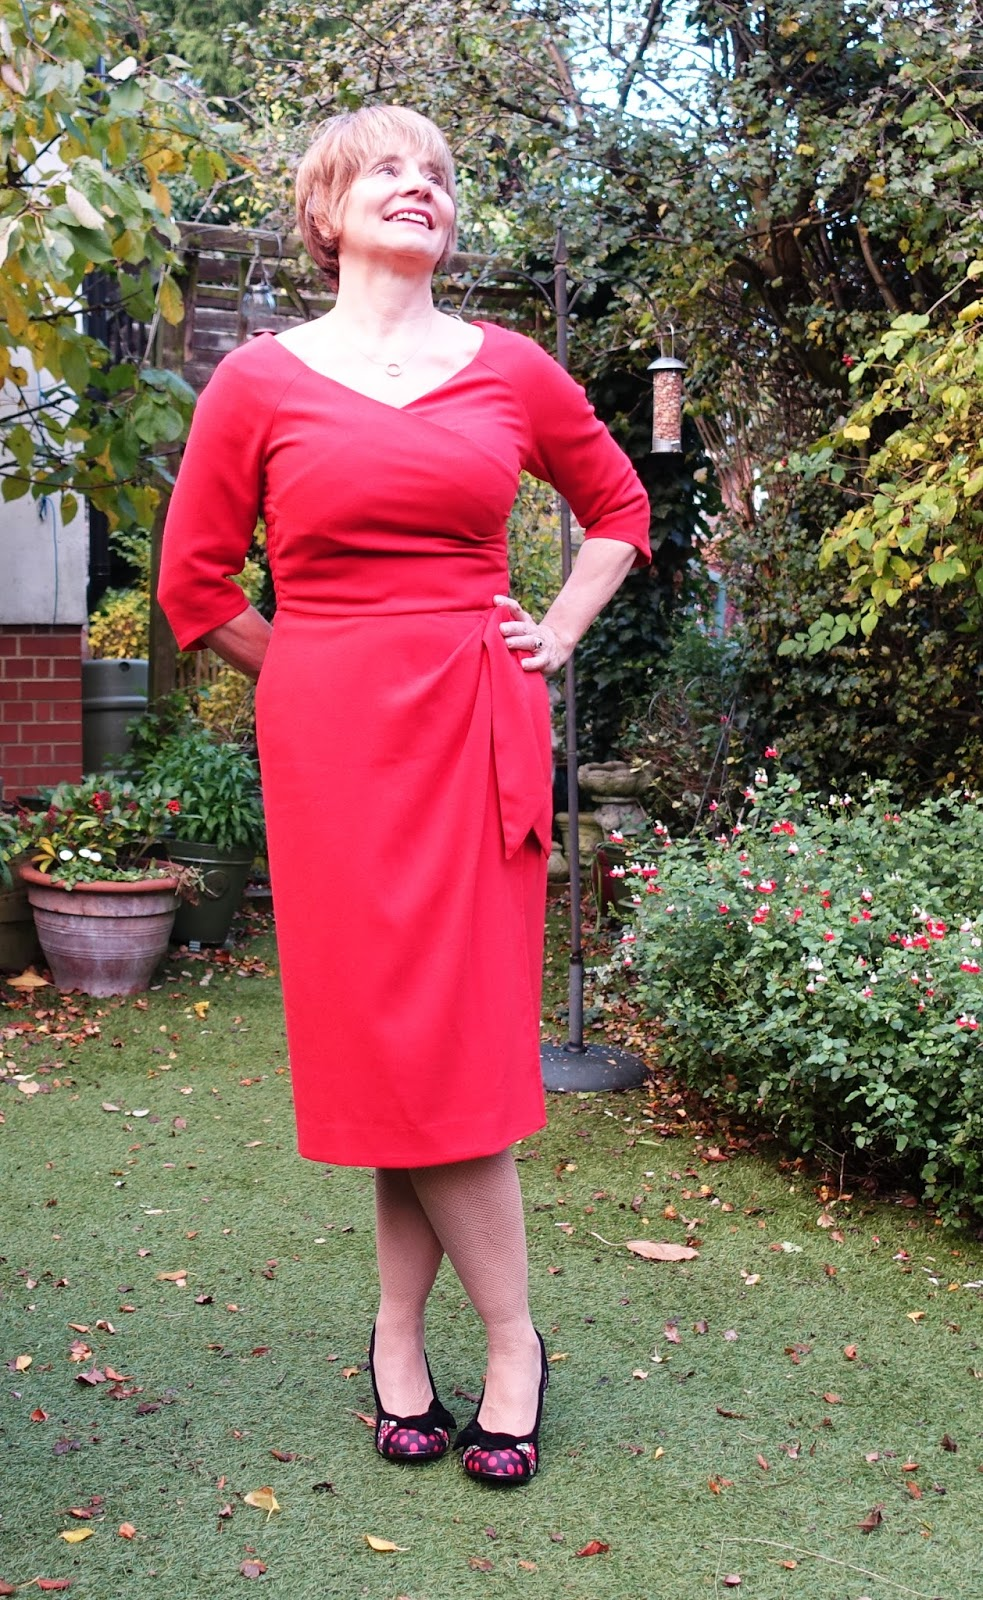 Image showing a 50 plus woman in red figure flattering dress and quirky red and black shoes decorated with cherries